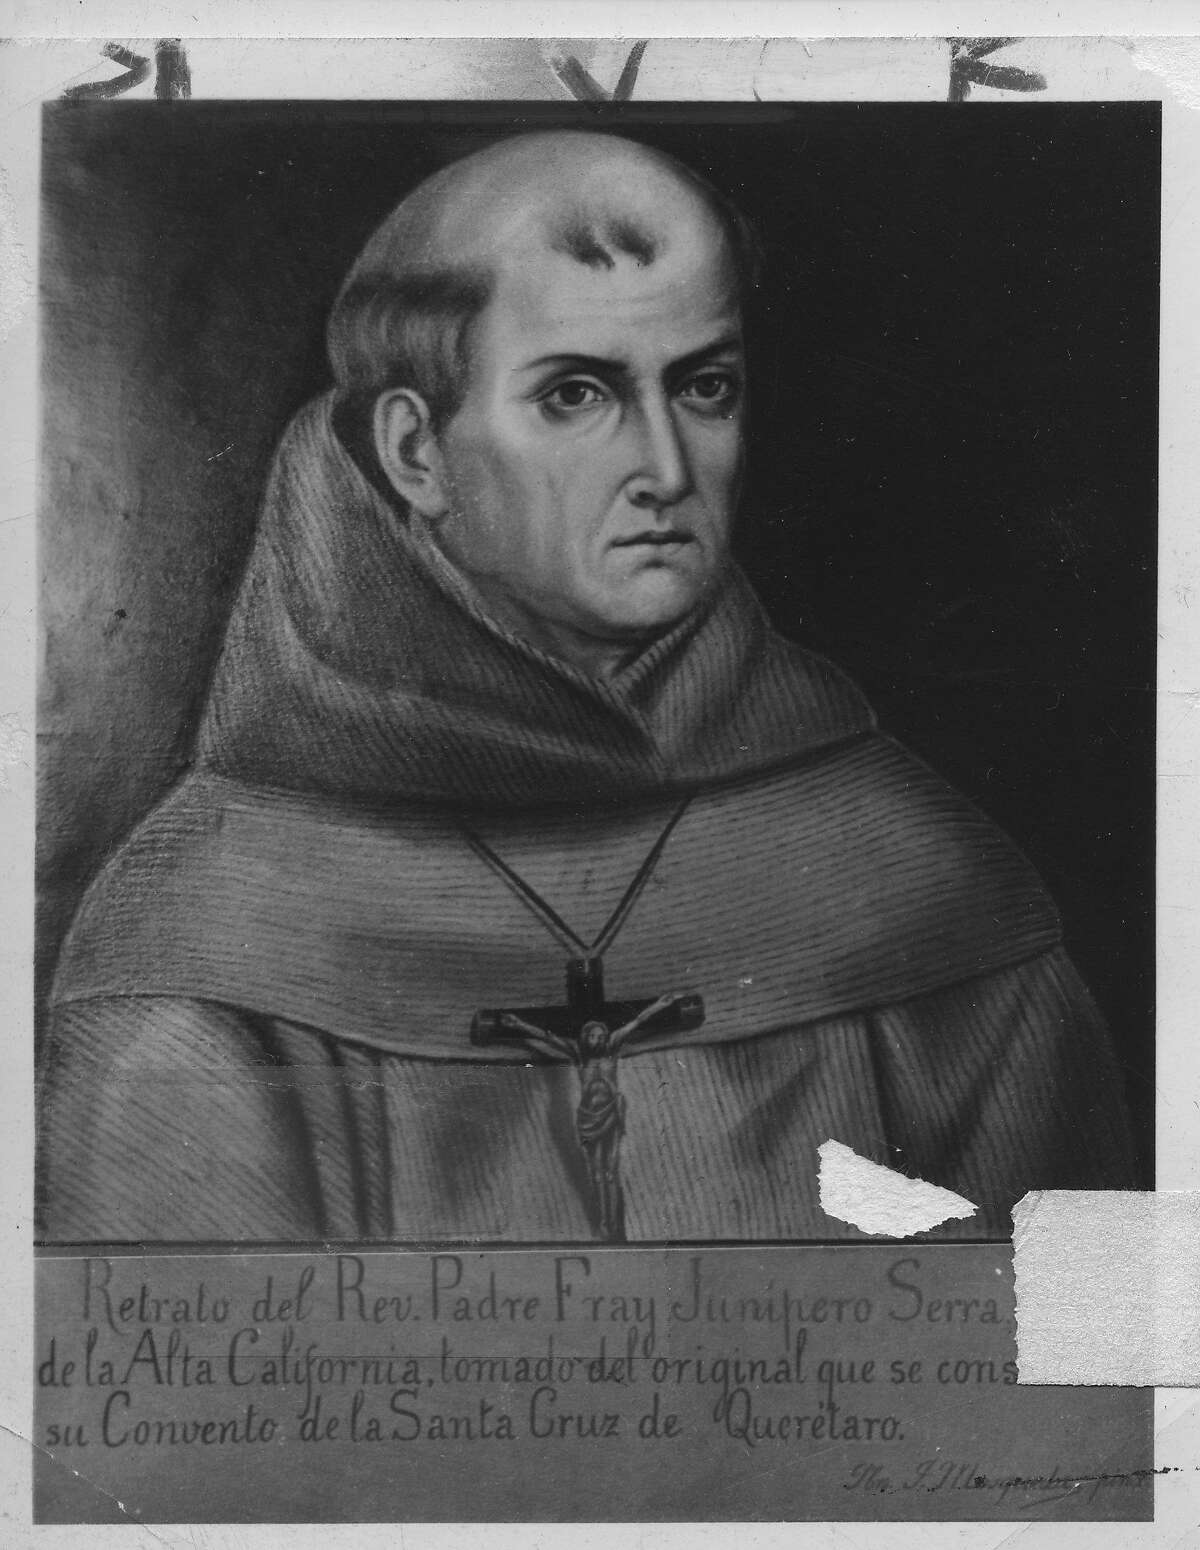 Father Junipero Serra will become a saint, Pope Francis announced.